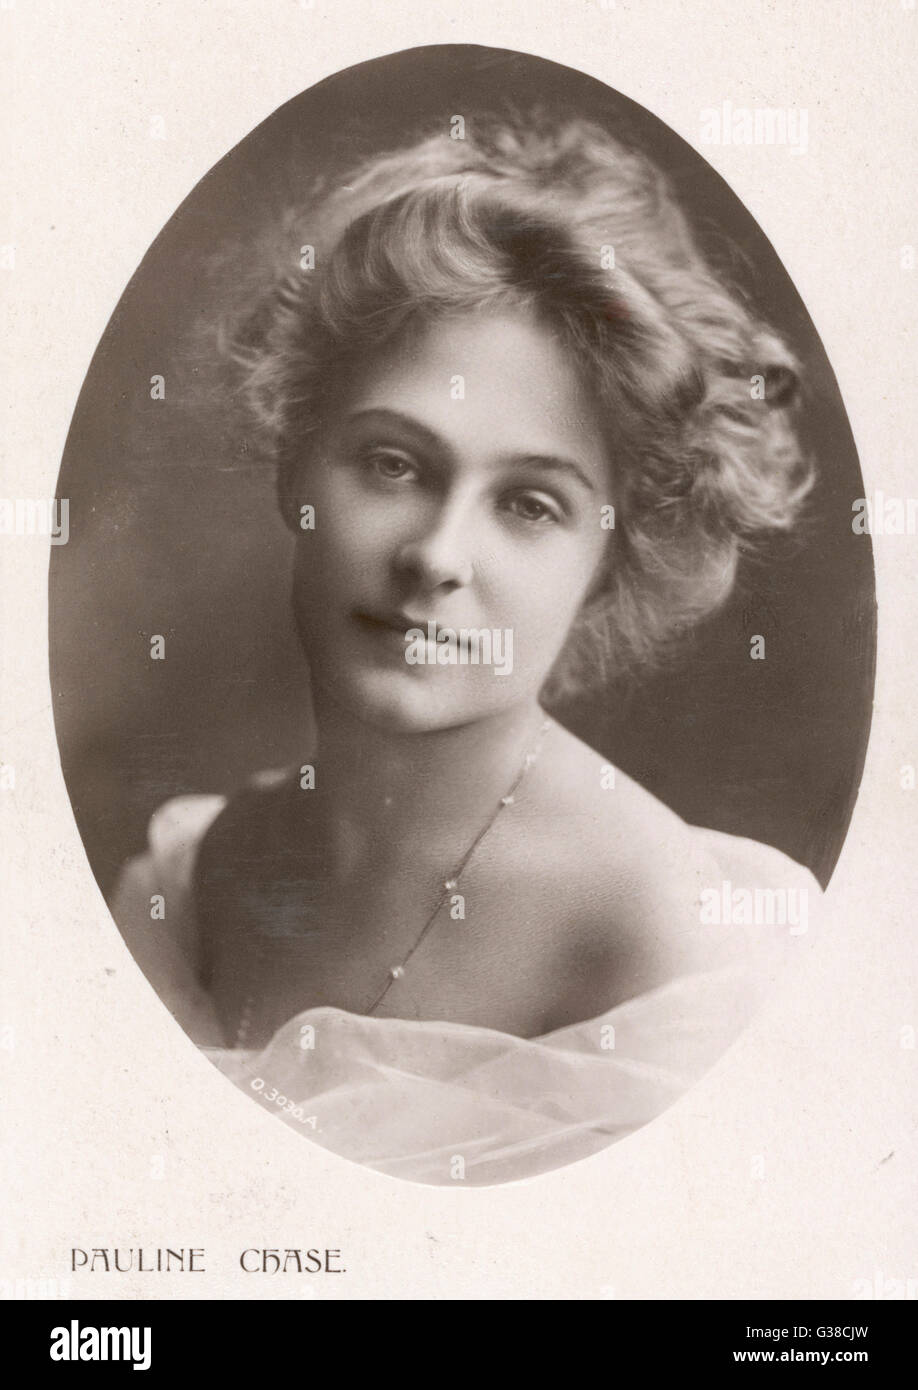 Pauline Chase, actress,  notable for playing the part of Barrie's 'Peter Pan'        Date: 1885 - 1962 - Stock Image